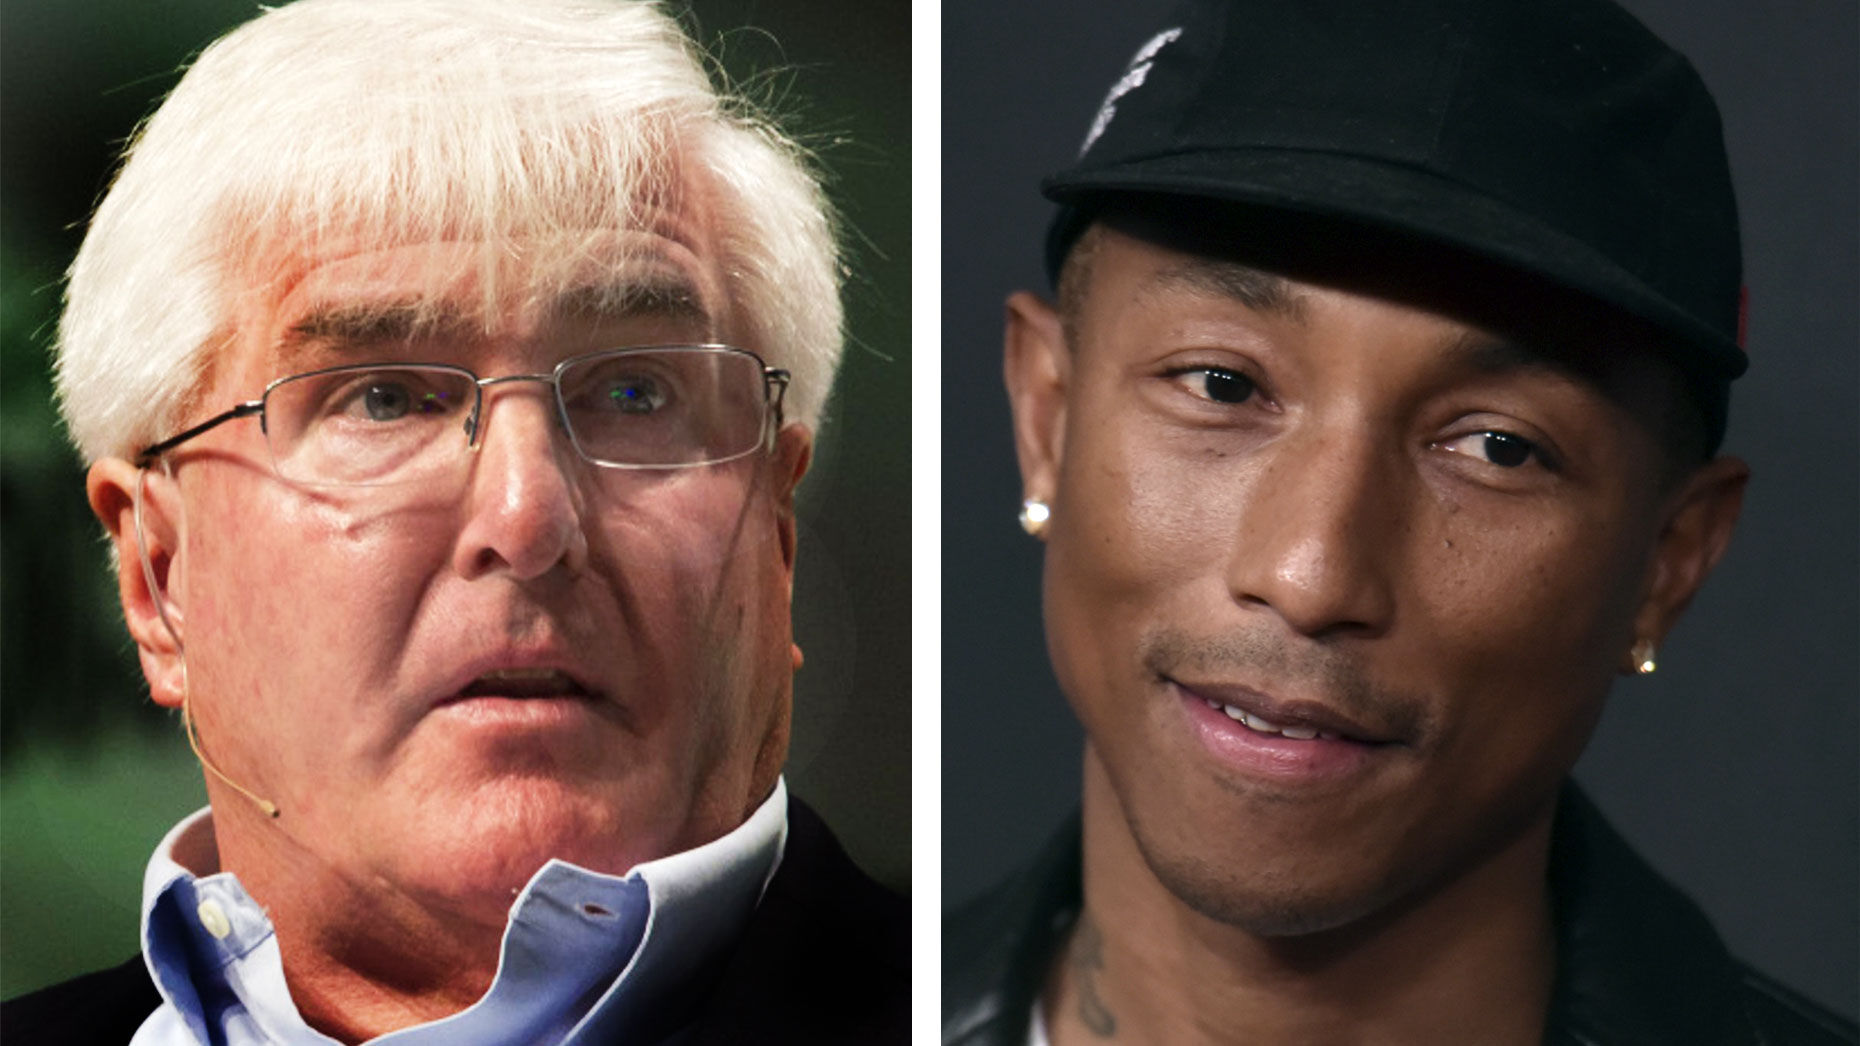 Ron Conway (left) and Pharrell Williams. Photos by Bloomberg; AP